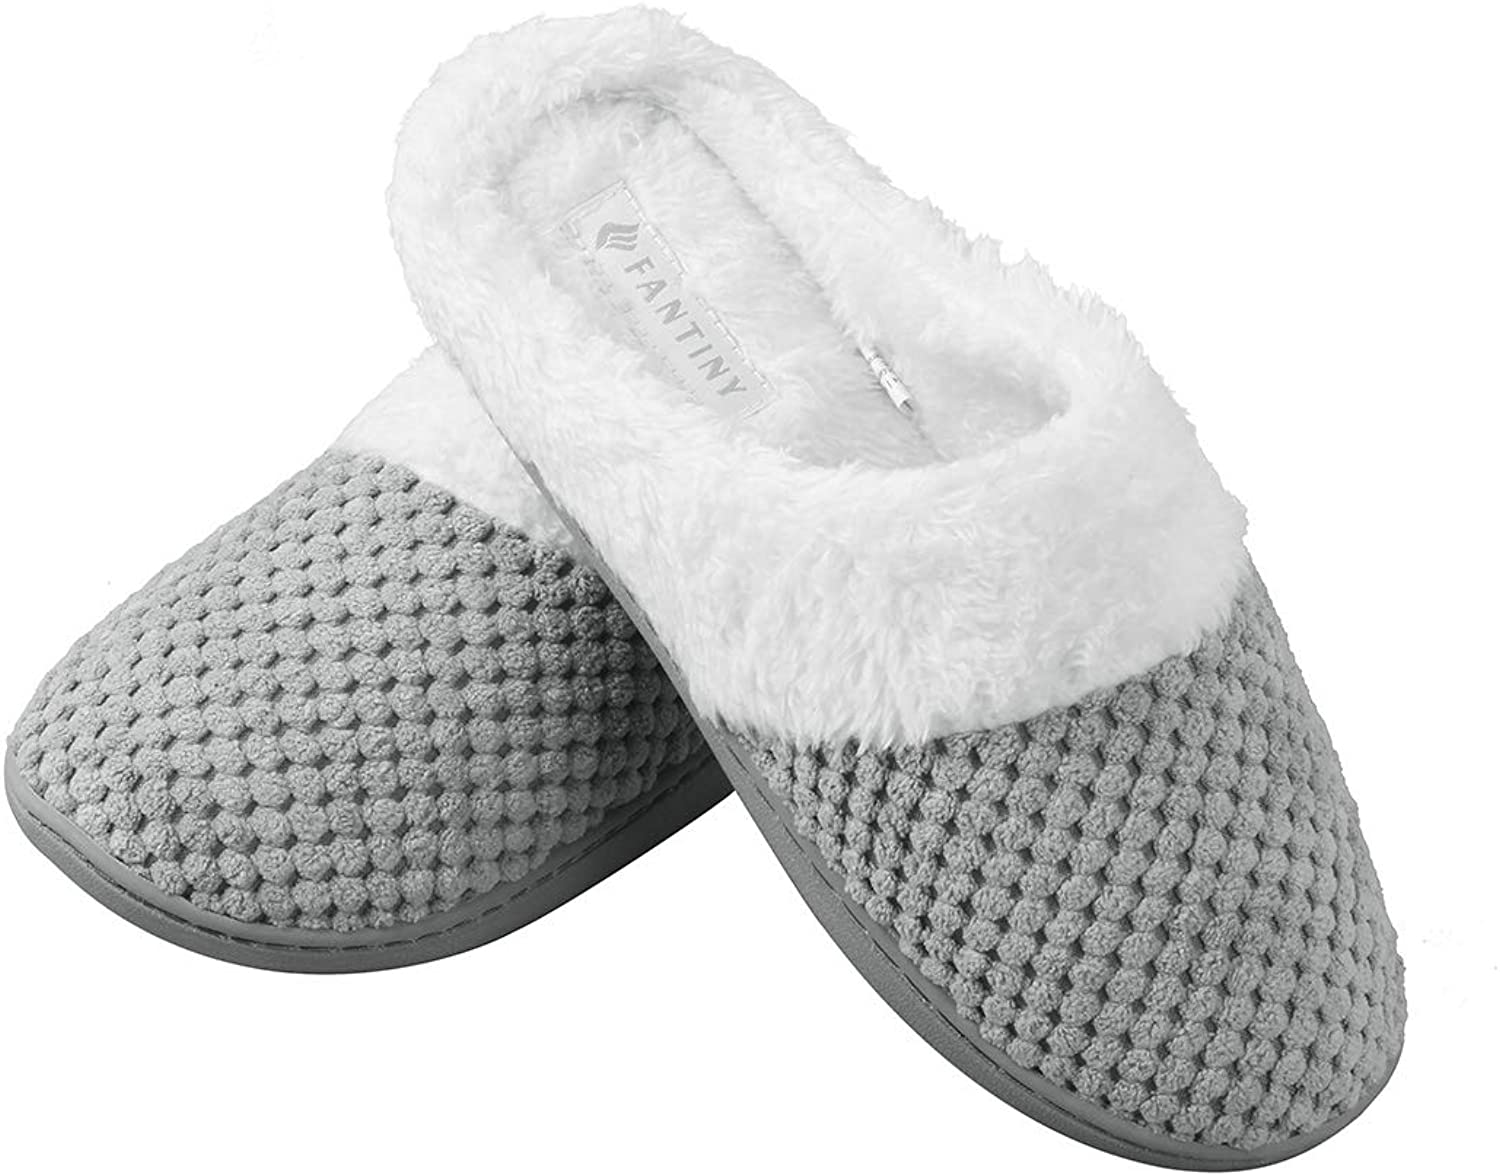 Joybery Women's Warm Winter Memory Foam Slippers Coral Fleece Lining Slip On Clog Scuff House shoes Indoor Outdoor Use